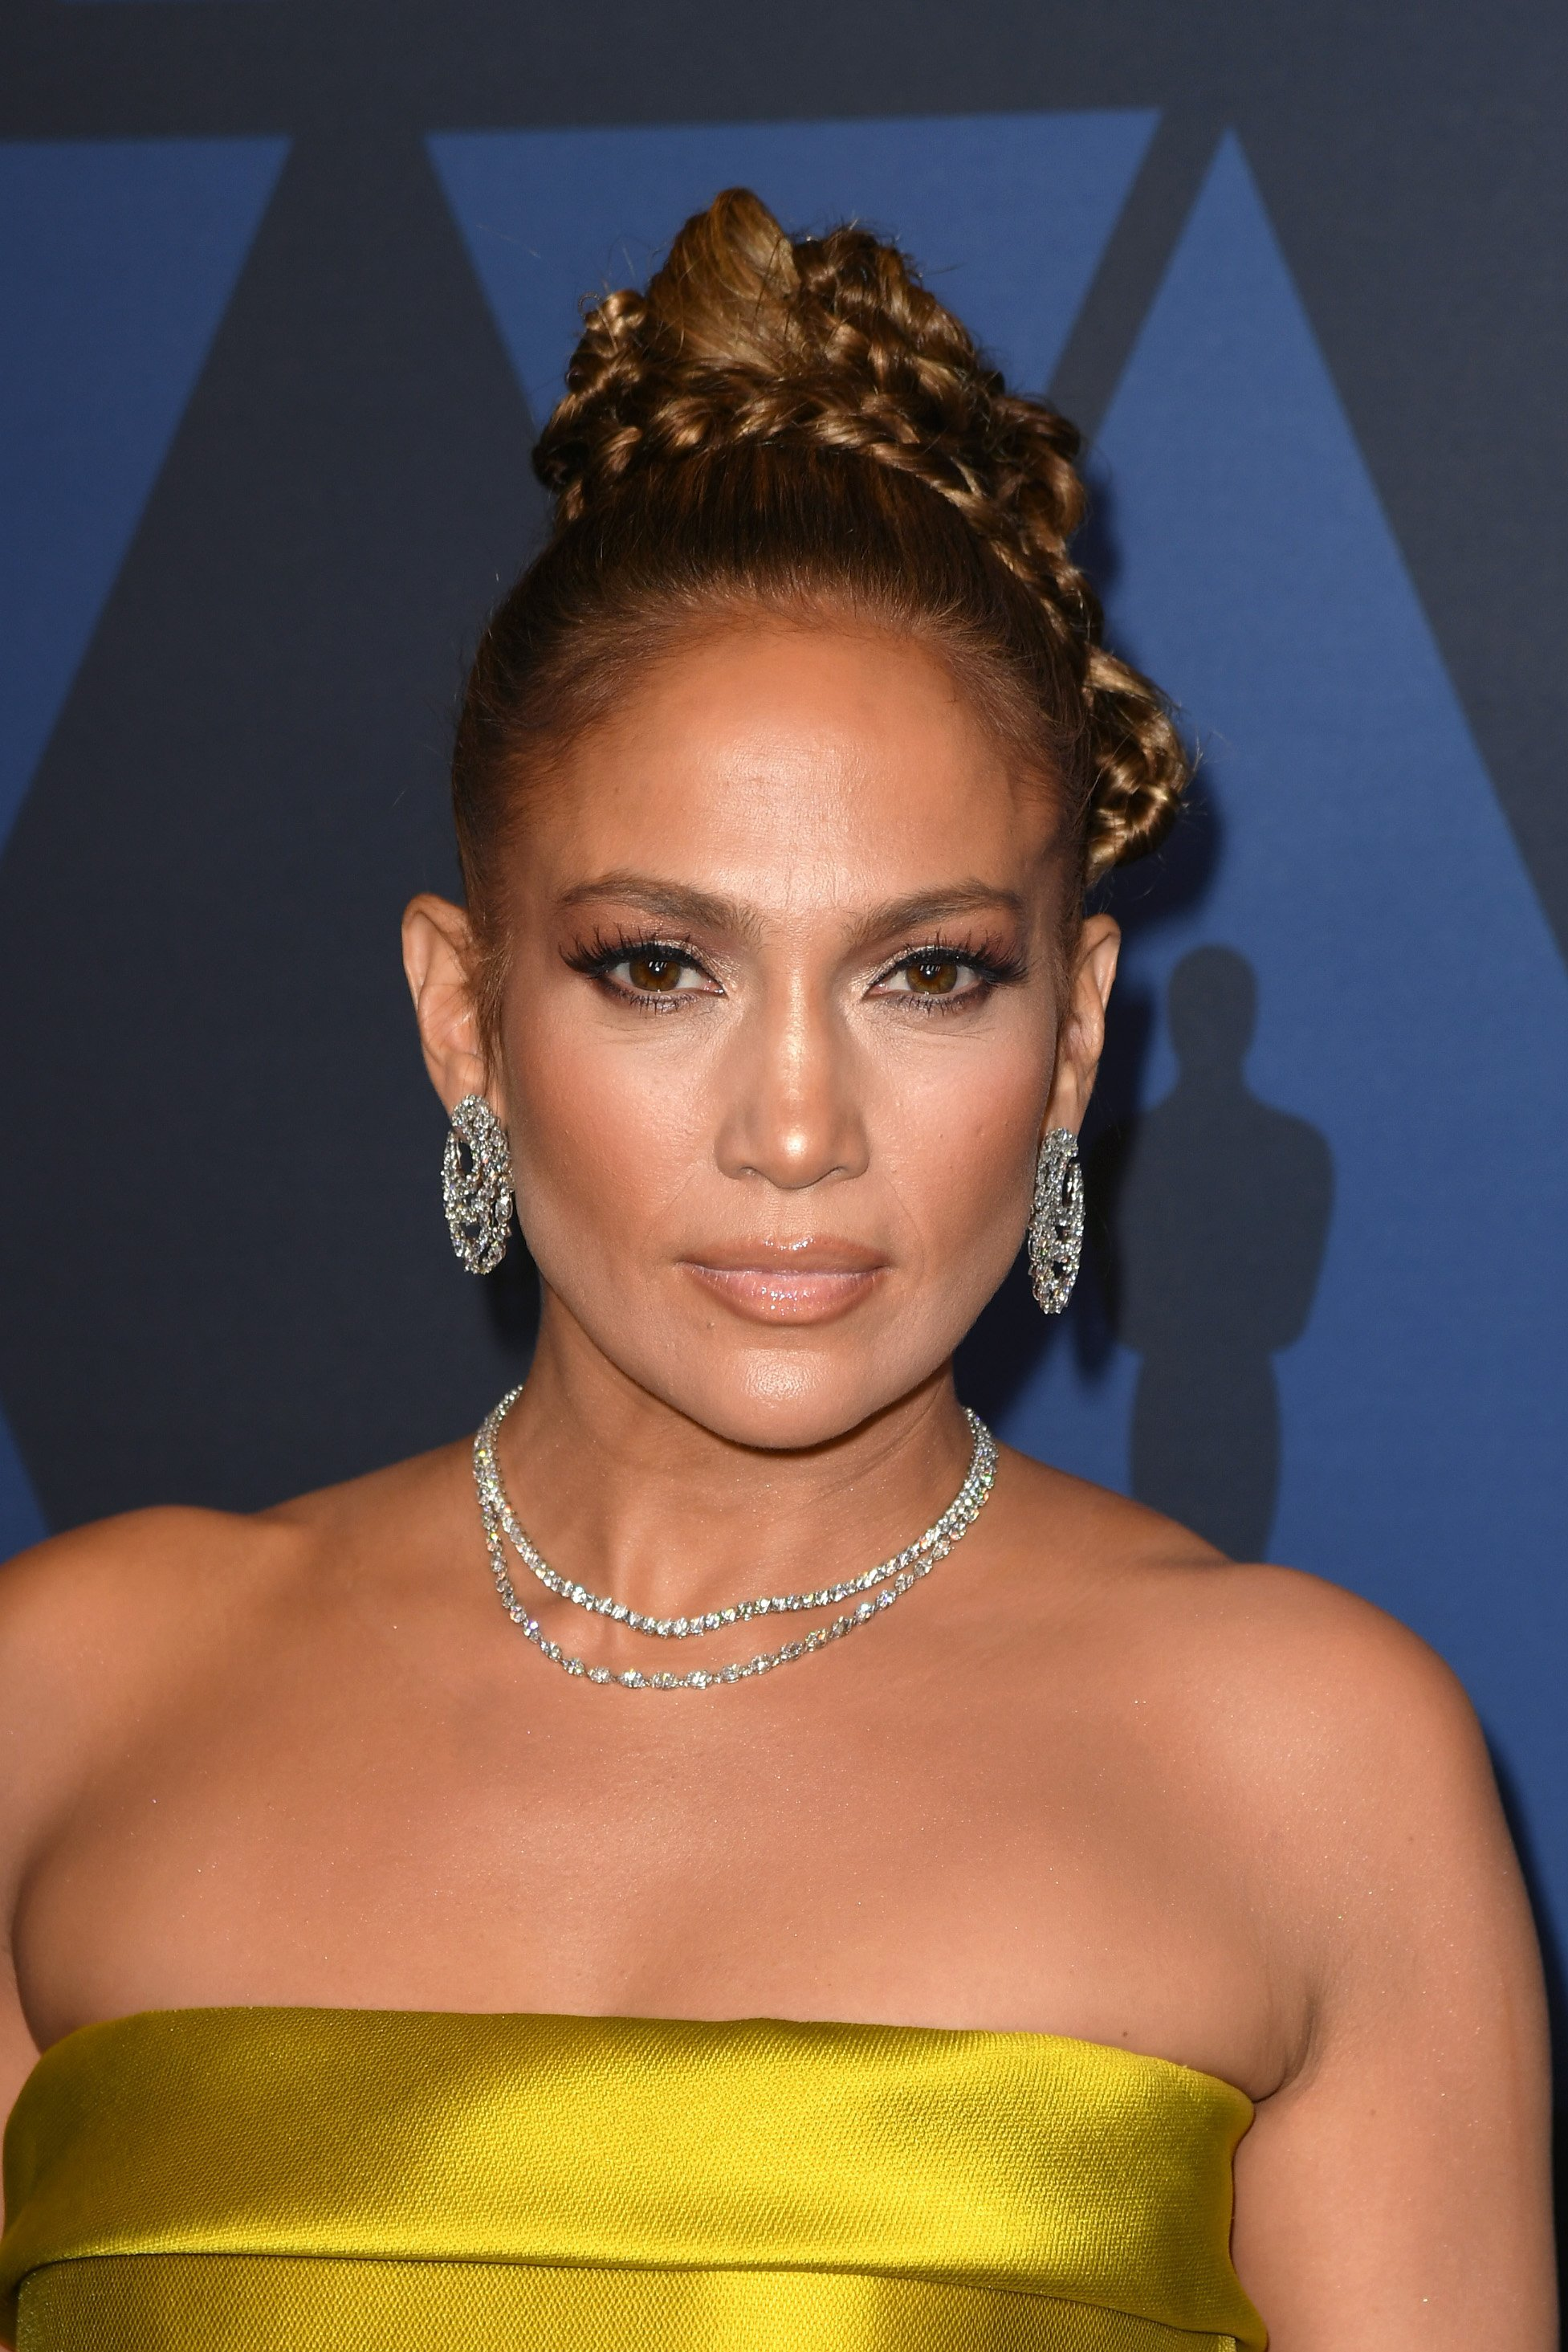 Jennifer Lopez attends the Academy Of Motion Picture Arts And Sciences' 11th Annual Governors Awards on October 27, 2019, in Hollywood, California. | Source: Getty Images.